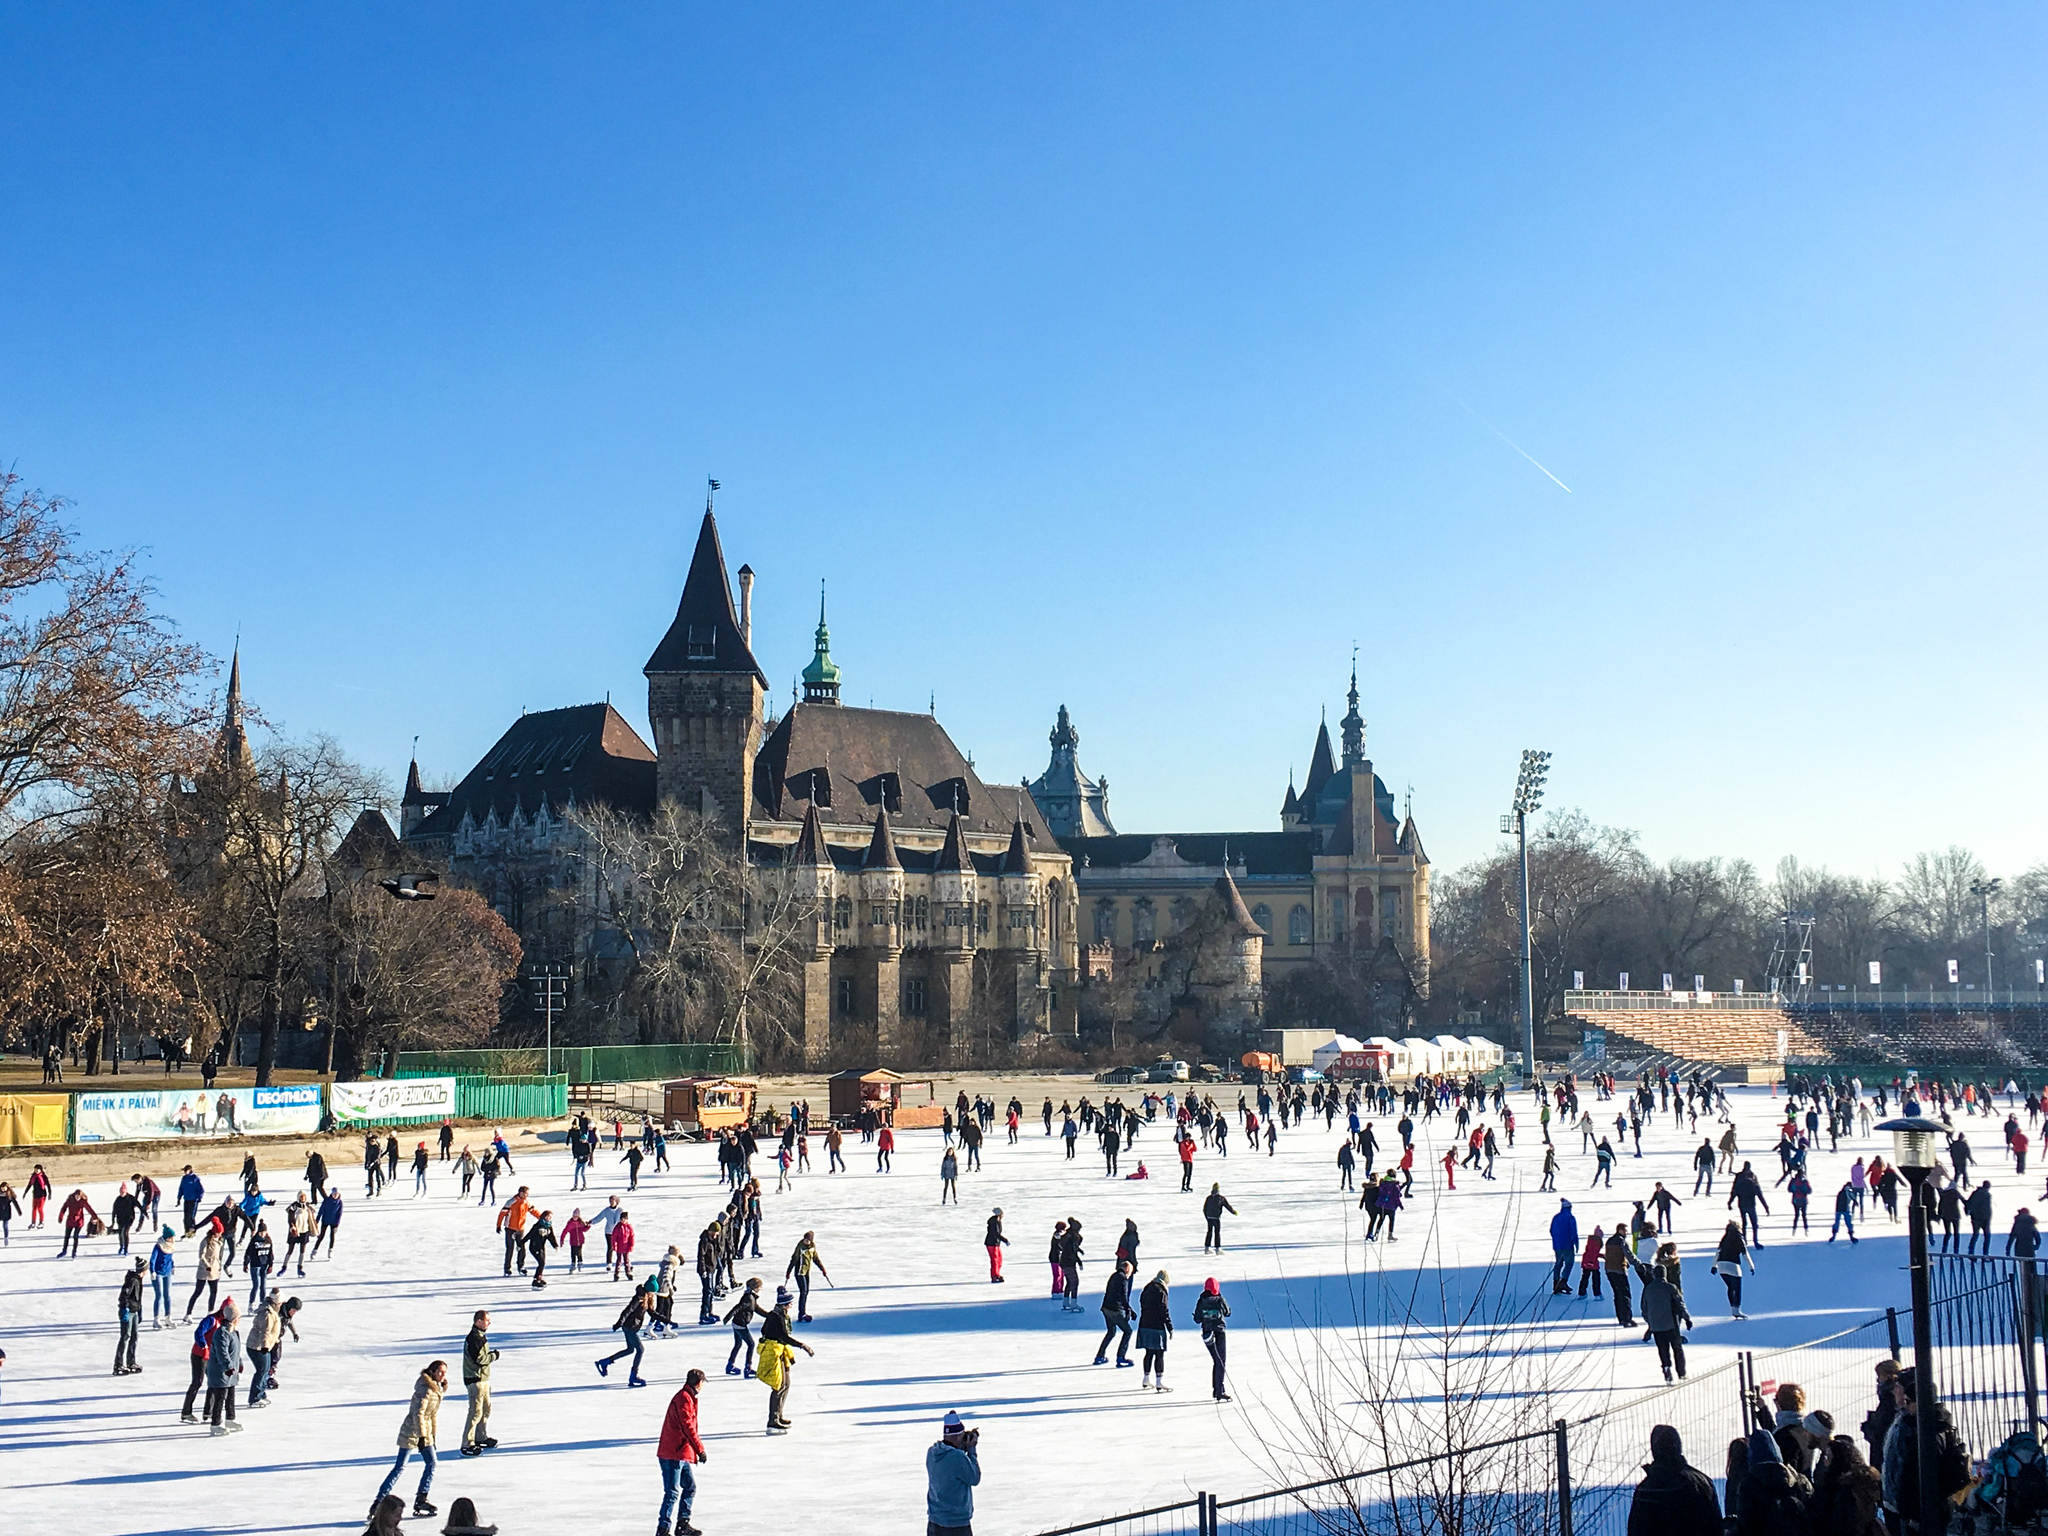 what to wear in budapest in january: bring snow boots or else!